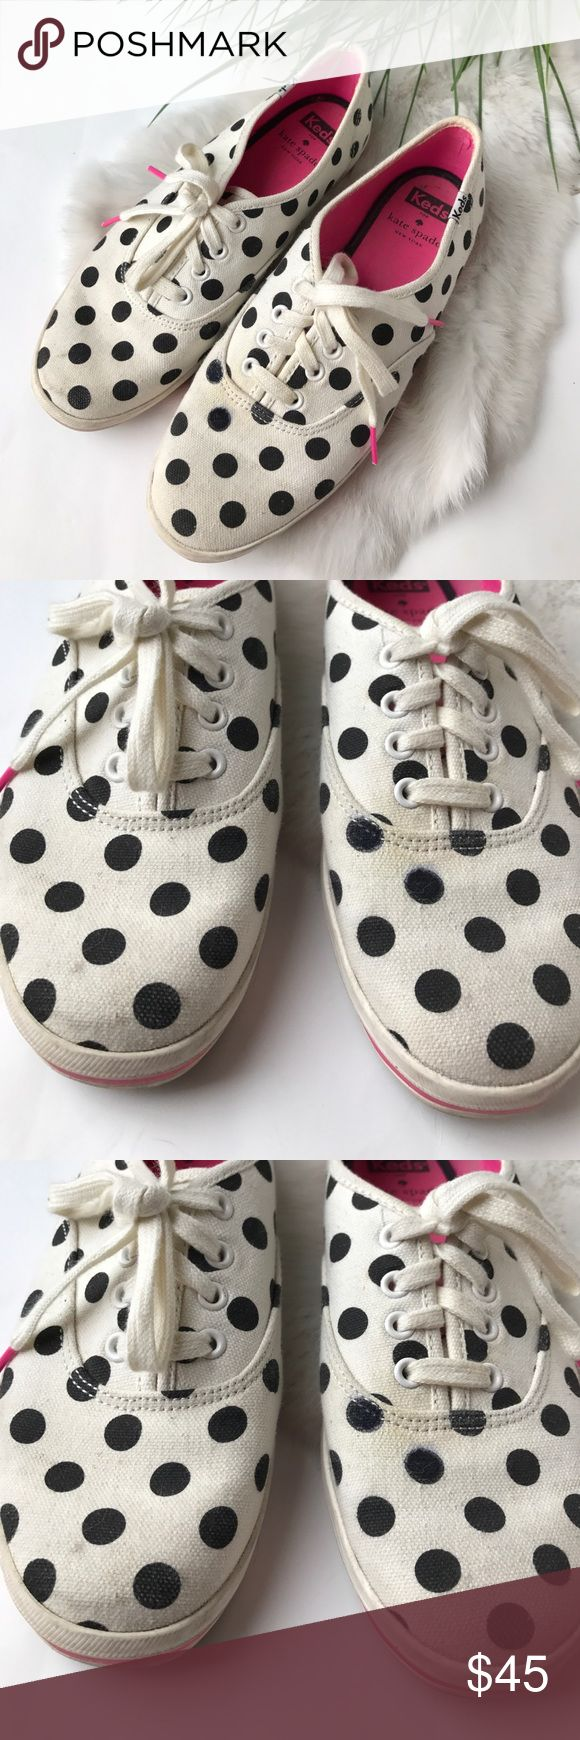 Kate Spade Canvas Shoes✨ Keds for Kate Spade! Cute polka dot shoes! These are a womens size 7.5 but fit like an 8! There are minor signs of wear on the canvas part. Worn about 10 times but they look great. I would say this is an 8/10 overall condition. No tears or rips just signs of wear on the canvas. Offers are welcome! kate spade Shoes Sneakers